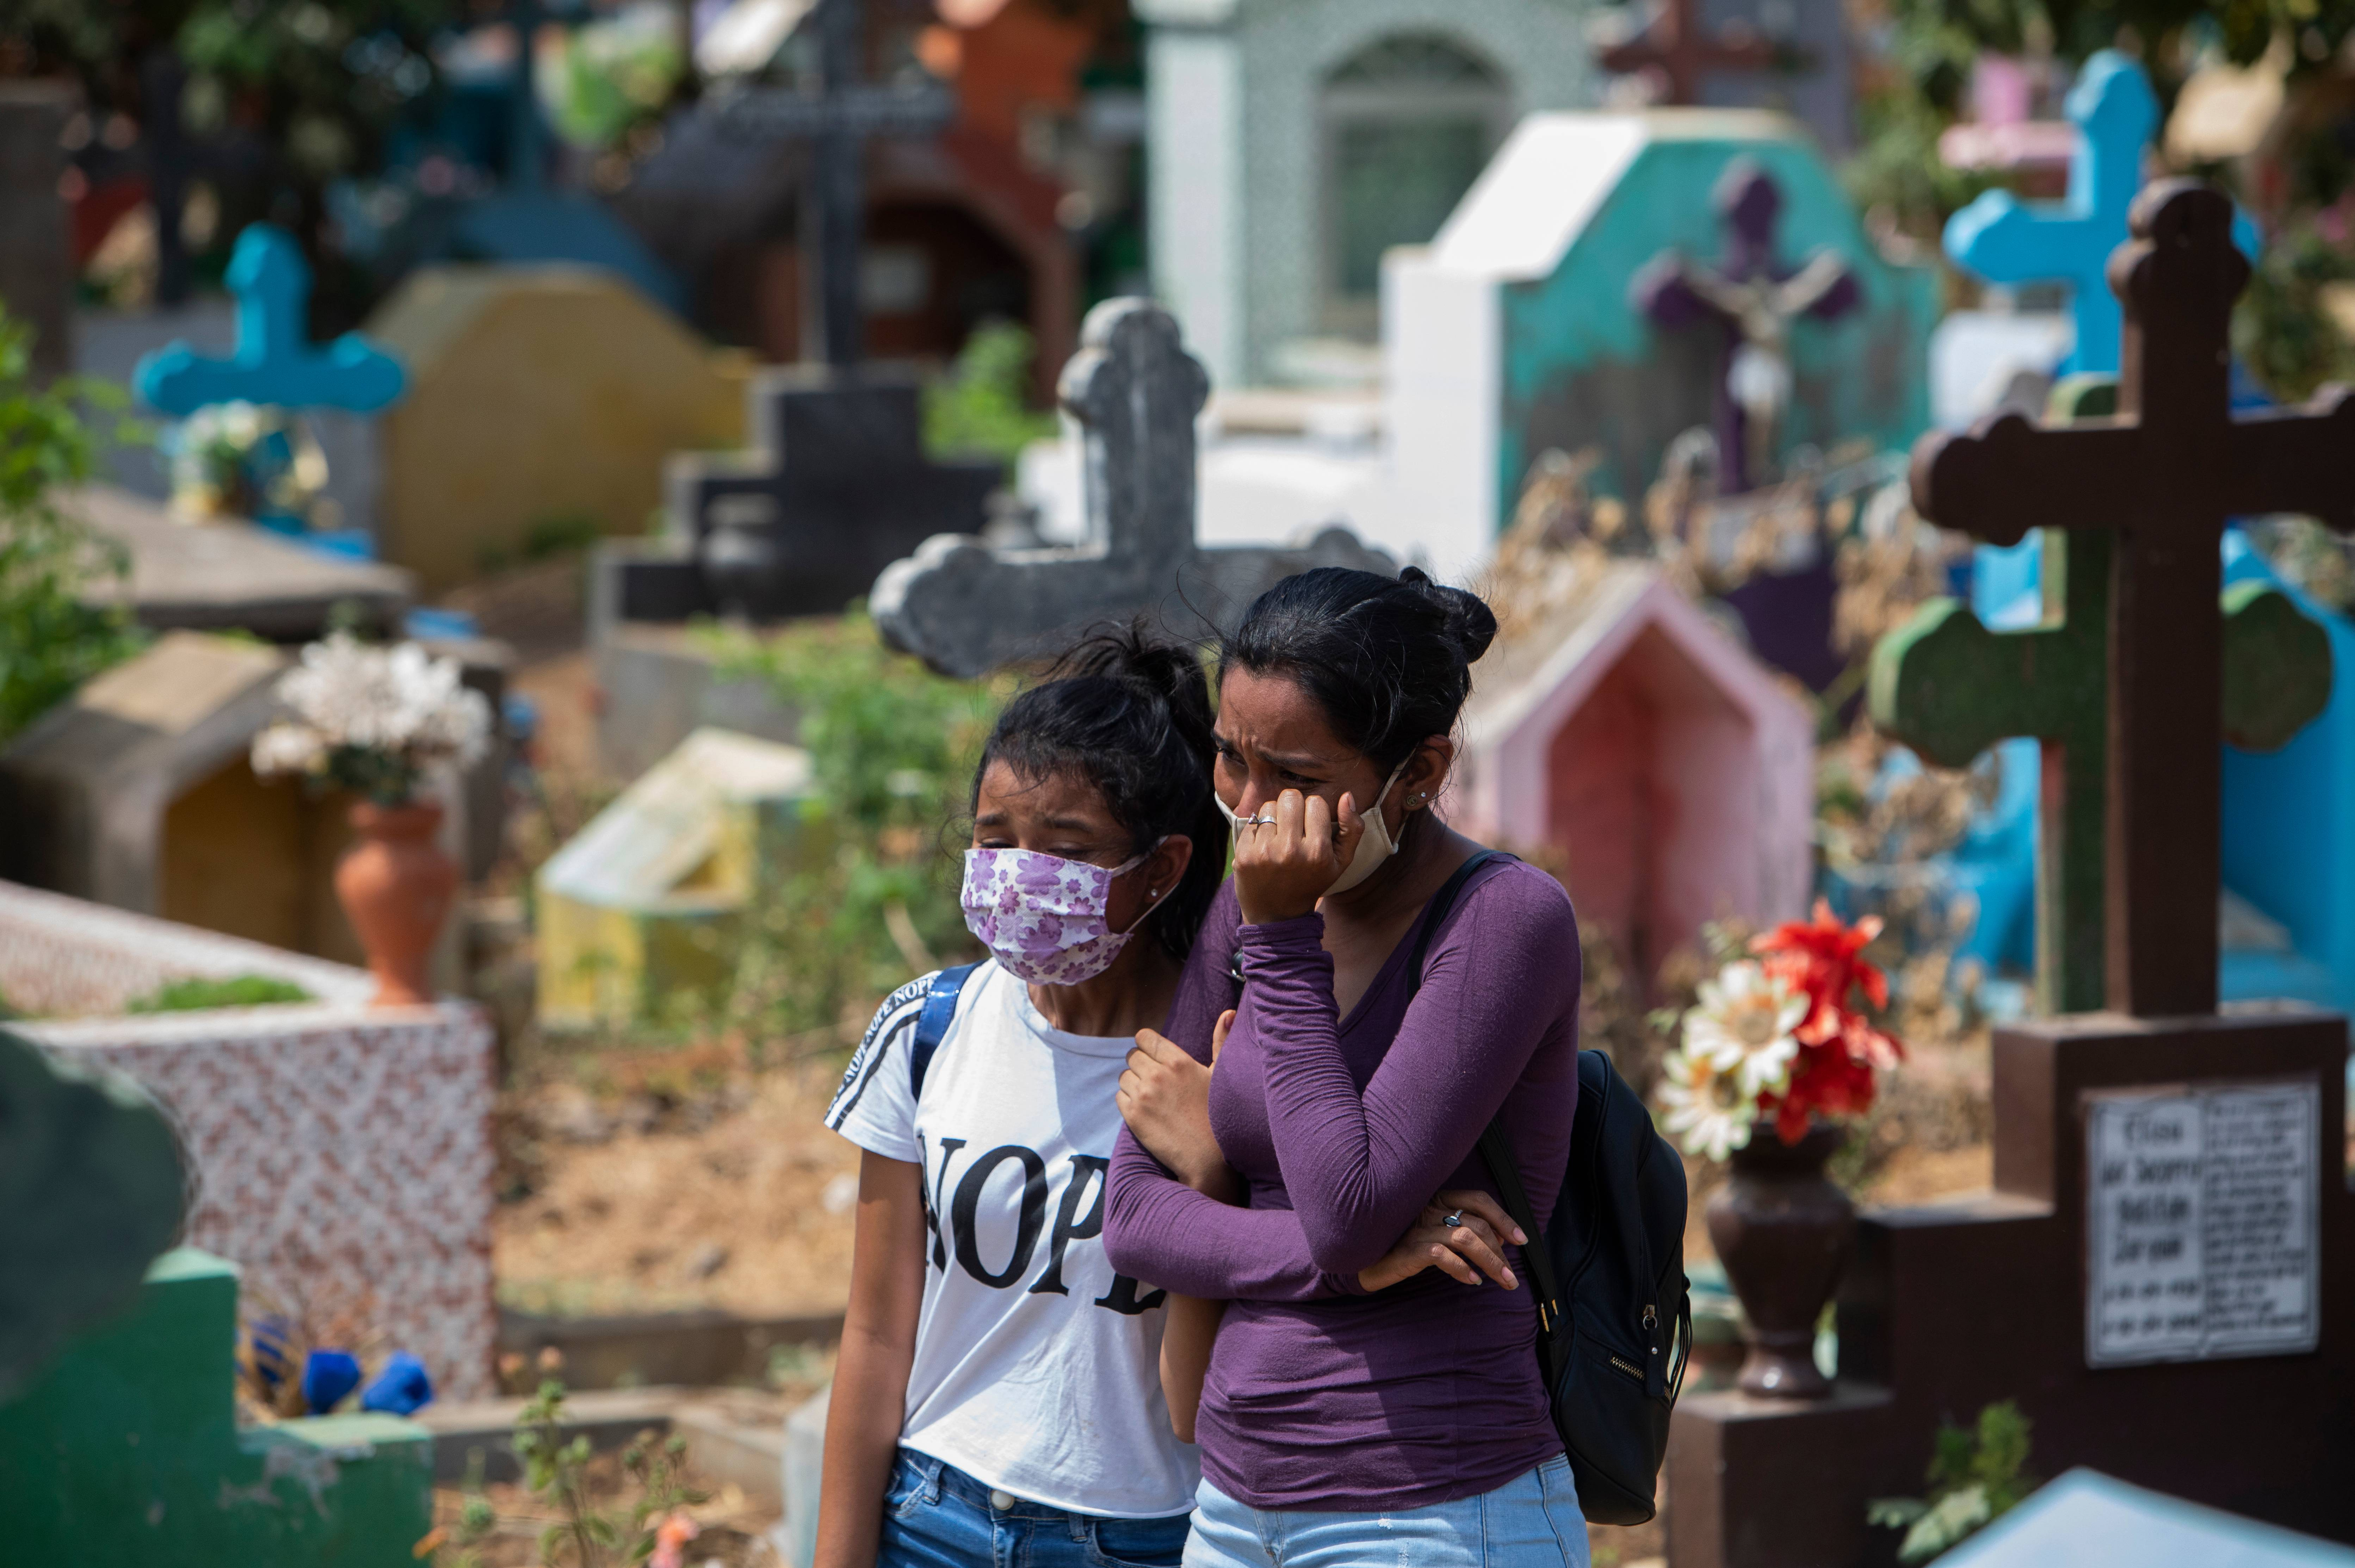 Relatives and friends of a mechanic called Roberto, who died at a hospital with symptoms of the novel coronavirus, COVID-19 and did not have a wake before his burial, cry at the Milagro de Dios Cemetery in Managua, on May 9, 2020. – The novel coronavirus has killed at least 276,435 people worldwide since the outbreak first emerged in China last December, according to a tally from official sources compiled by AFP at 1900 GMT on Saturday (Photo by Inti OCON / AFP)